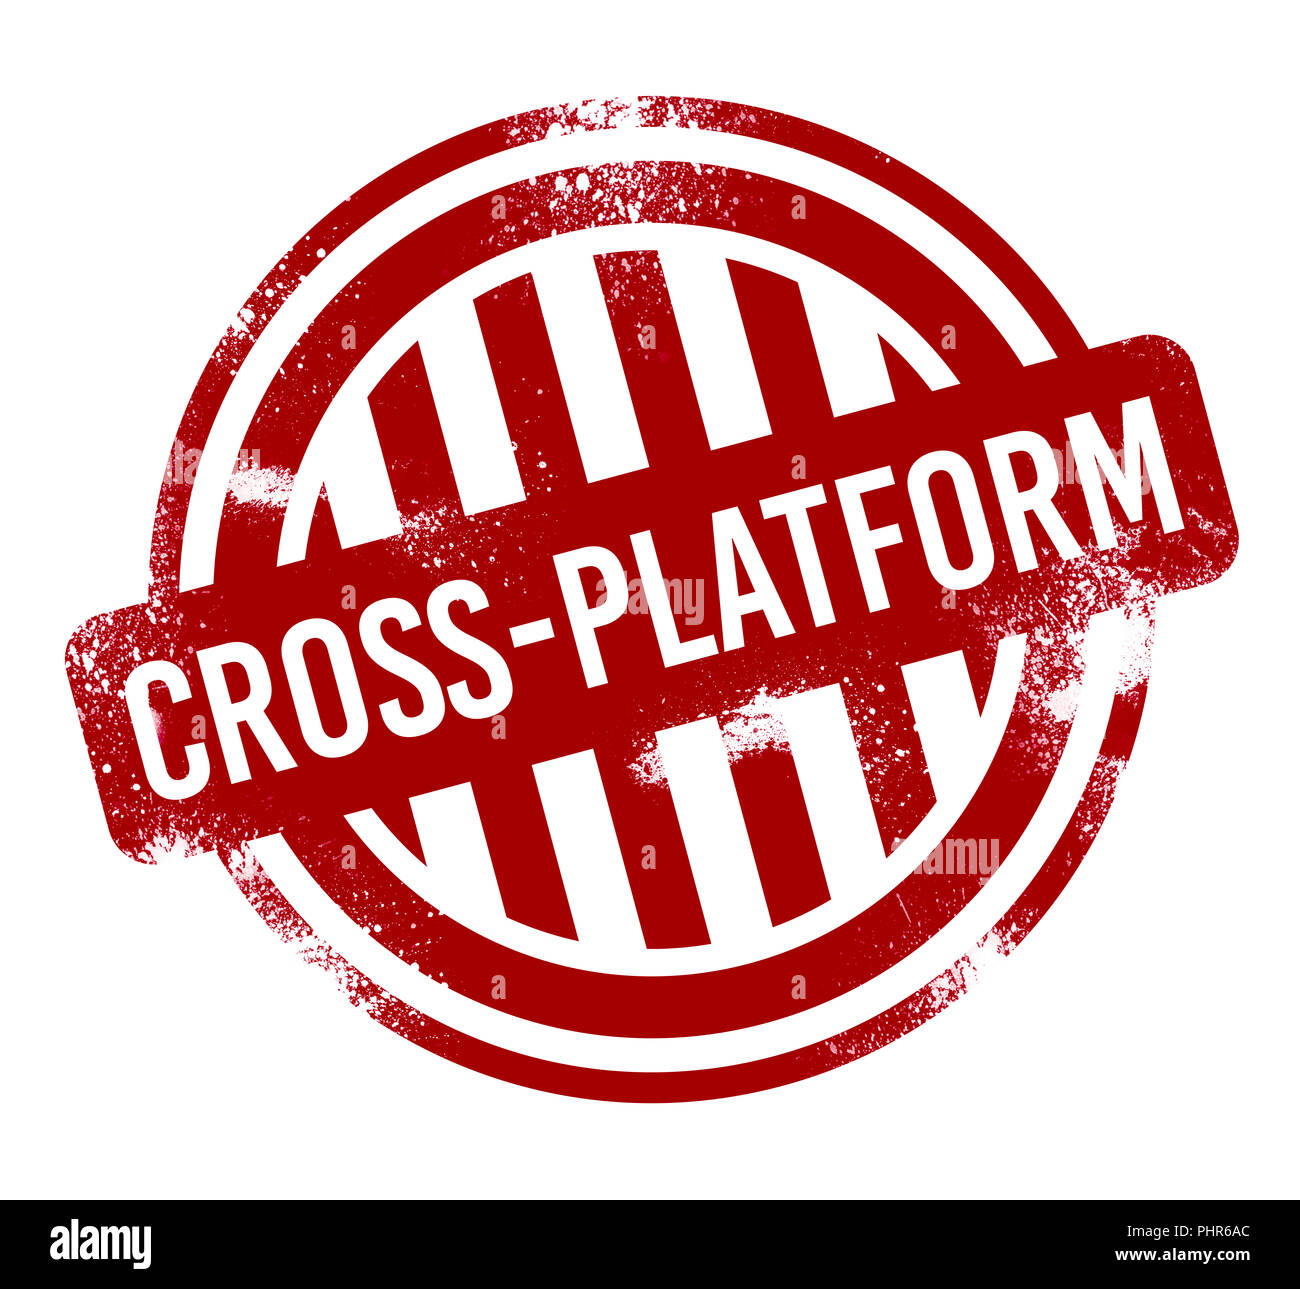 Cross-platform - grunge stamp, bouton rouge Photo Stock